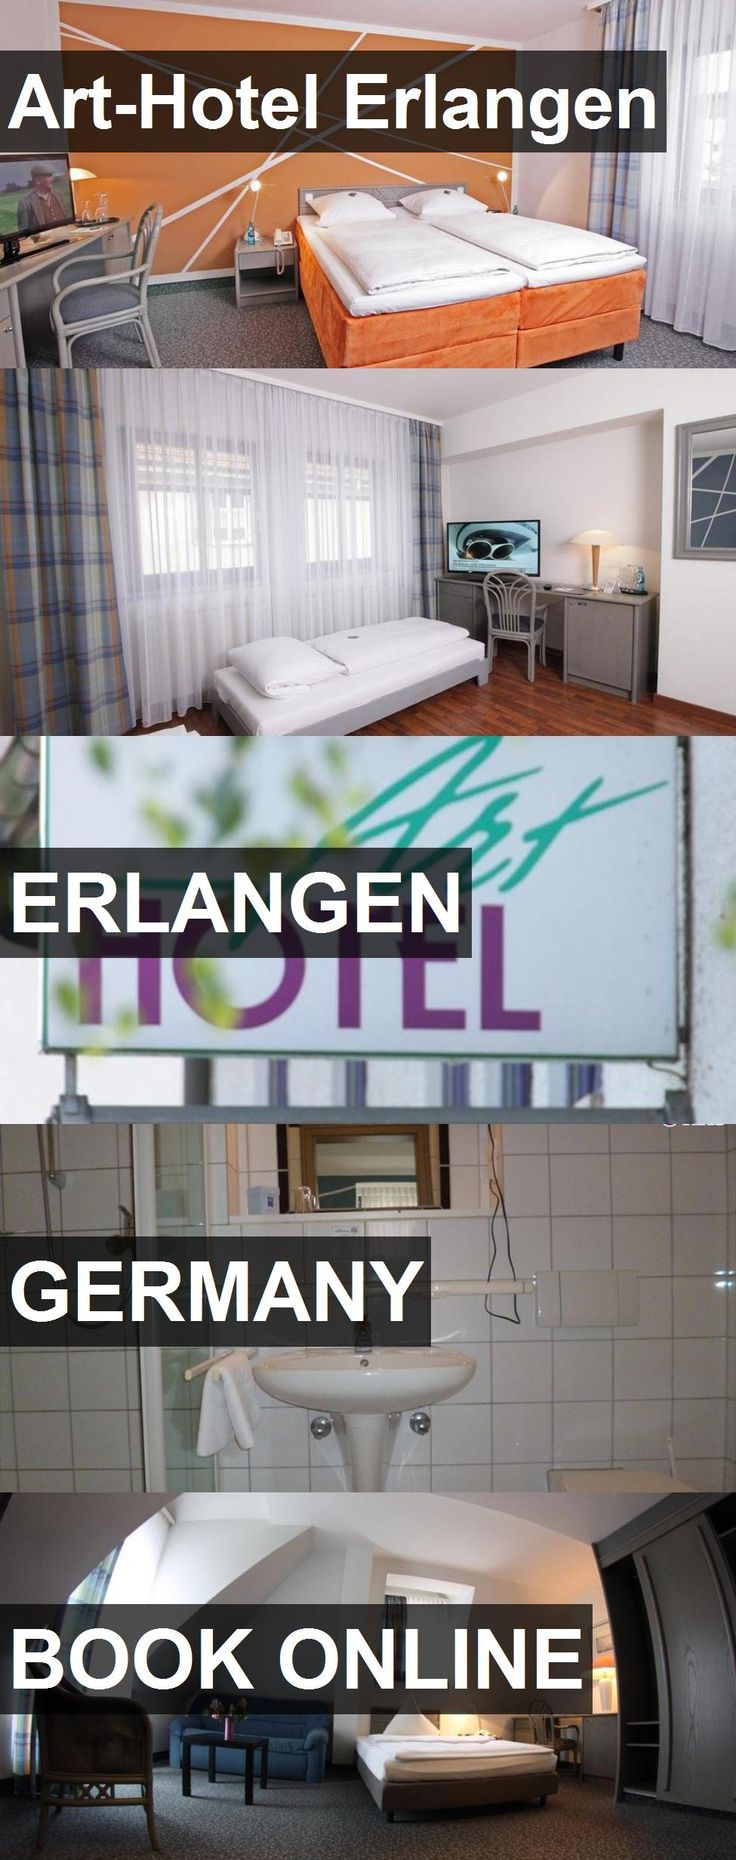 Art-Hotel Erlangen in Erlangen, Germany. For more information, photos, reviews and best prices please follow the link. #Germany #Erlangen #travel #vacation #hotel